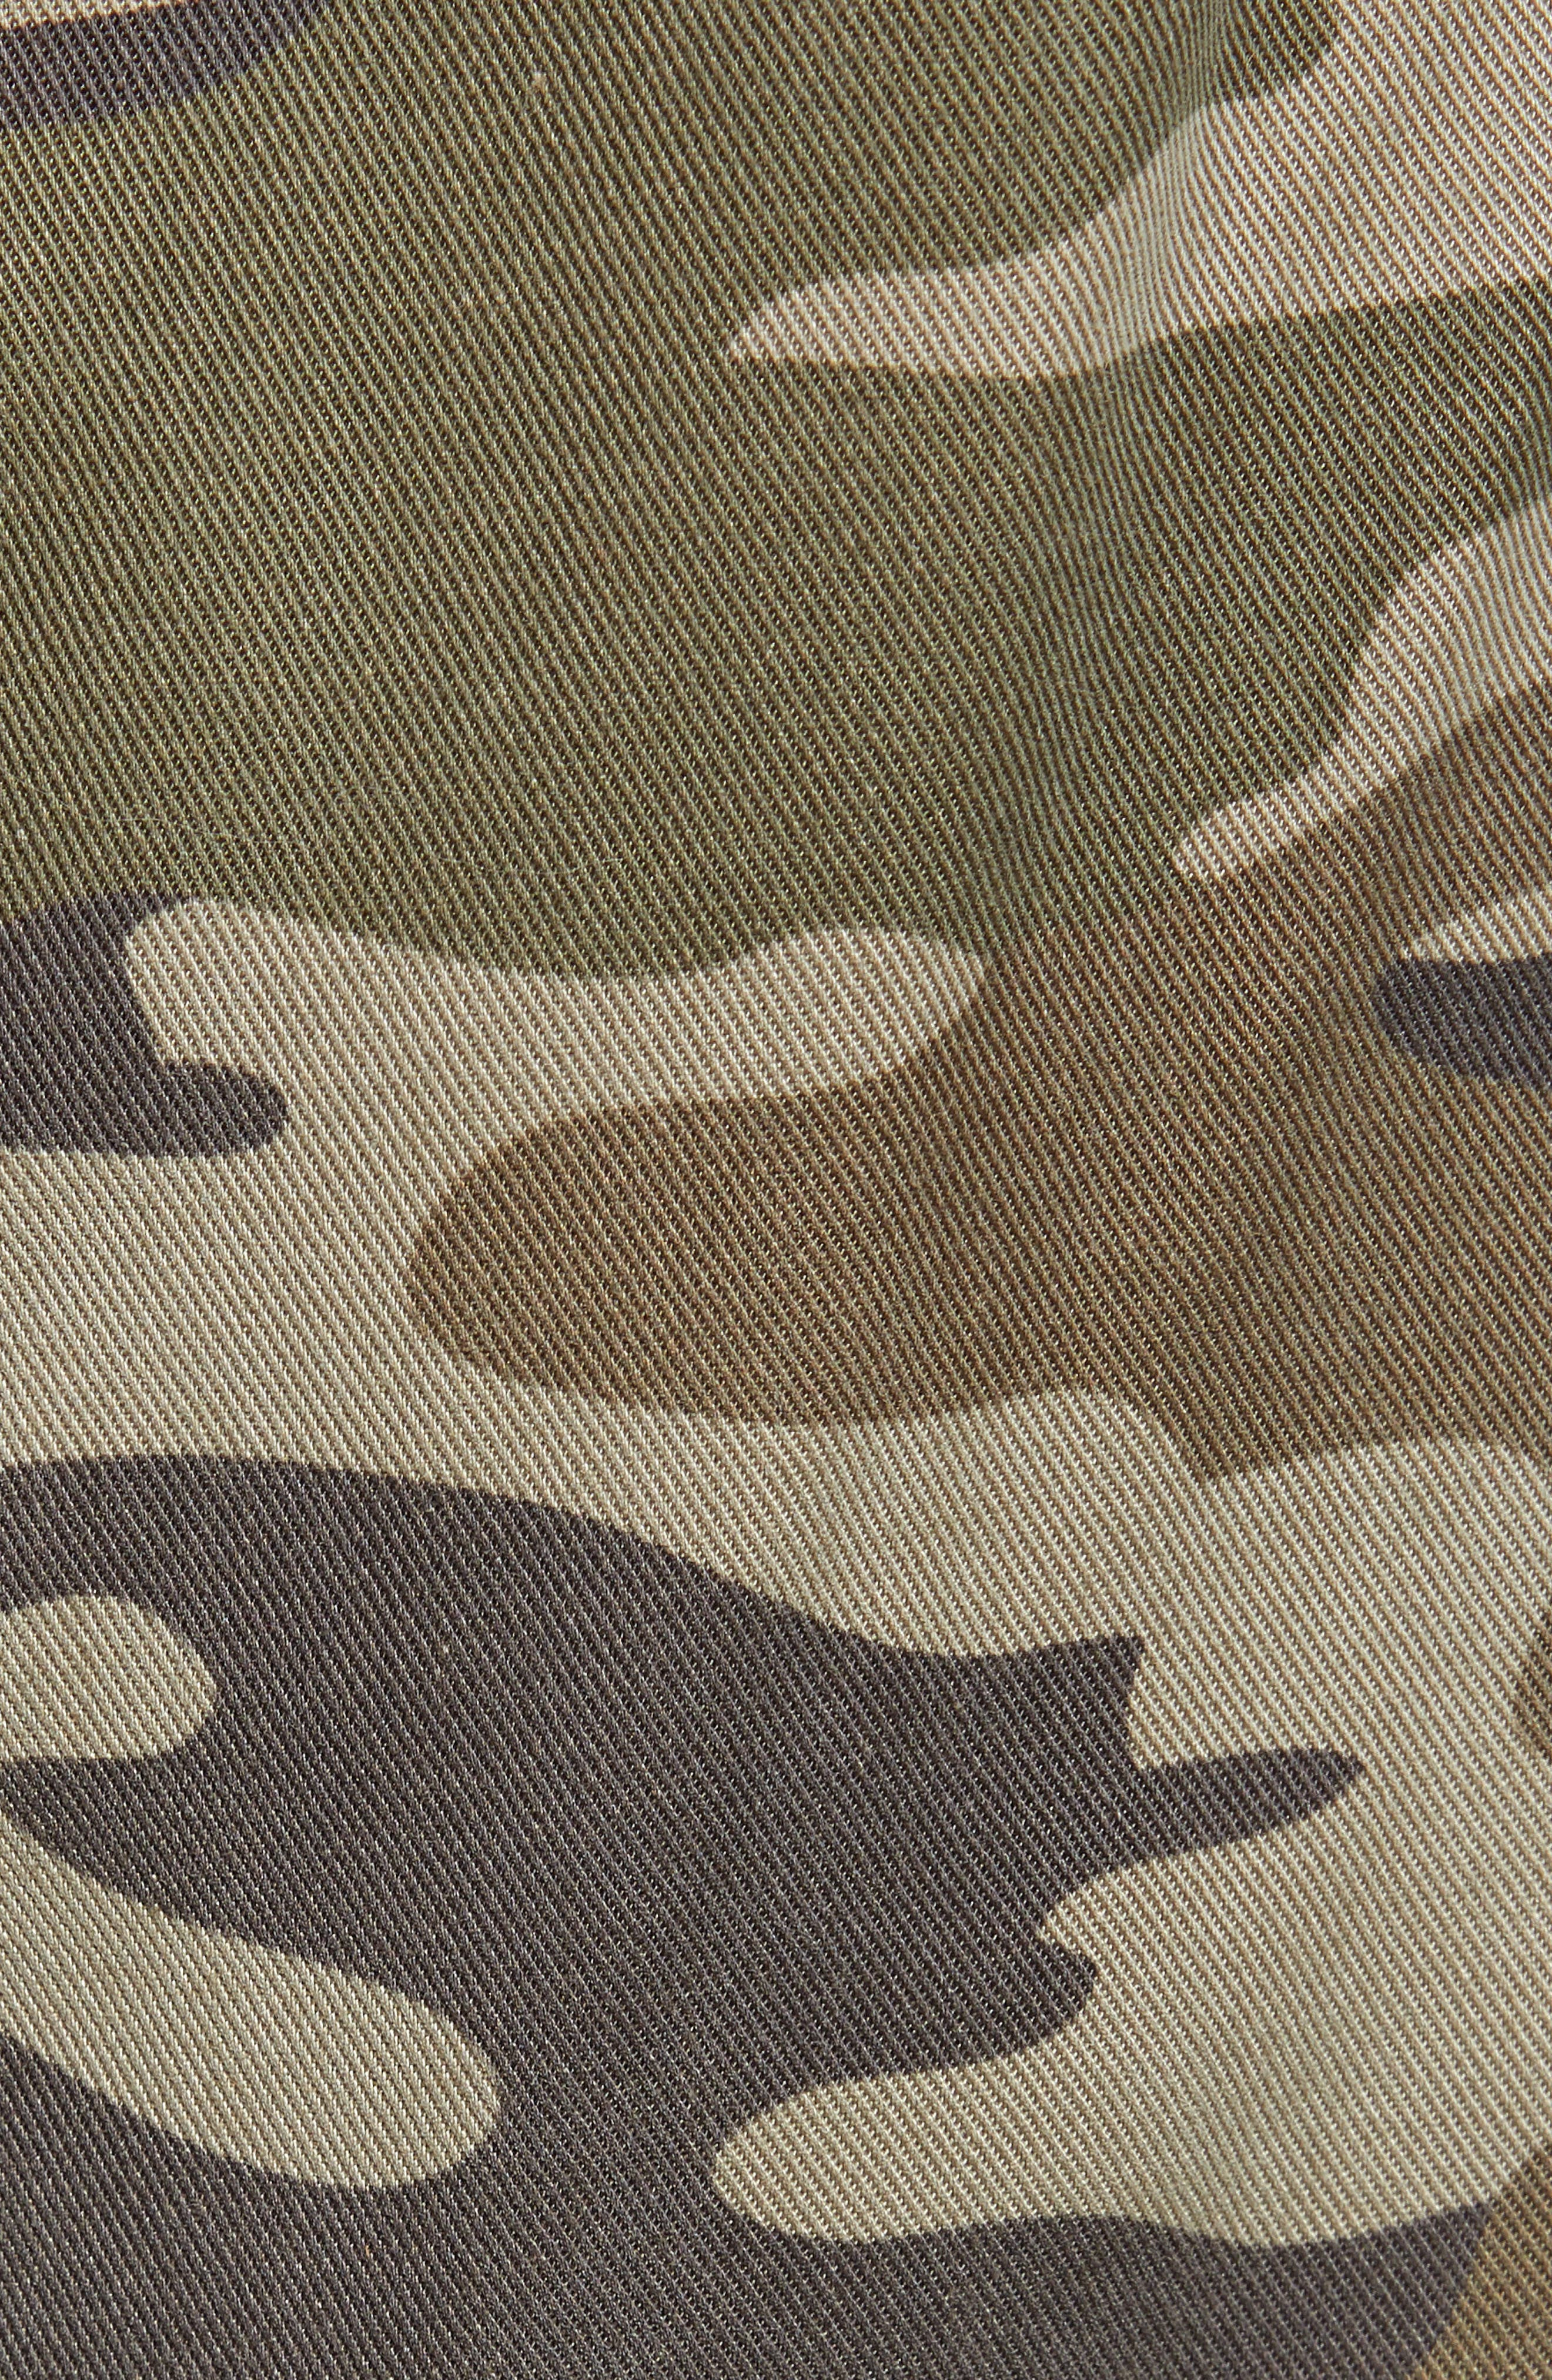 Clay Camo Lace-Up Pants,                             Alternate thumbnail 6, color,                             CLAY CAMO